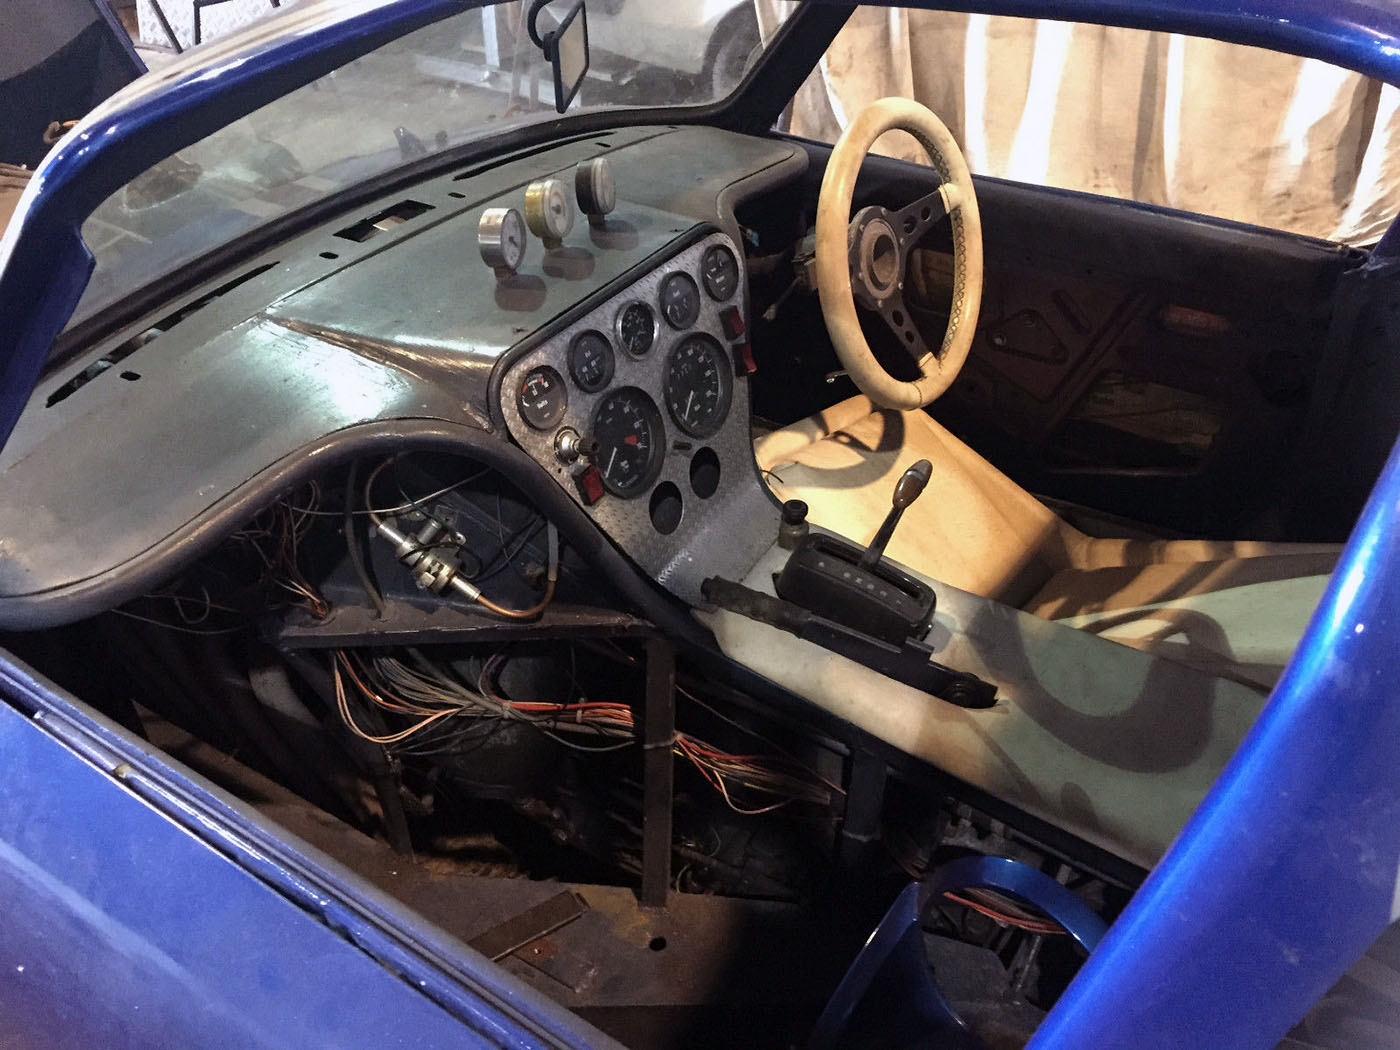 1979 Triumph Spitfire Wiring Harness - Wiring Solutions